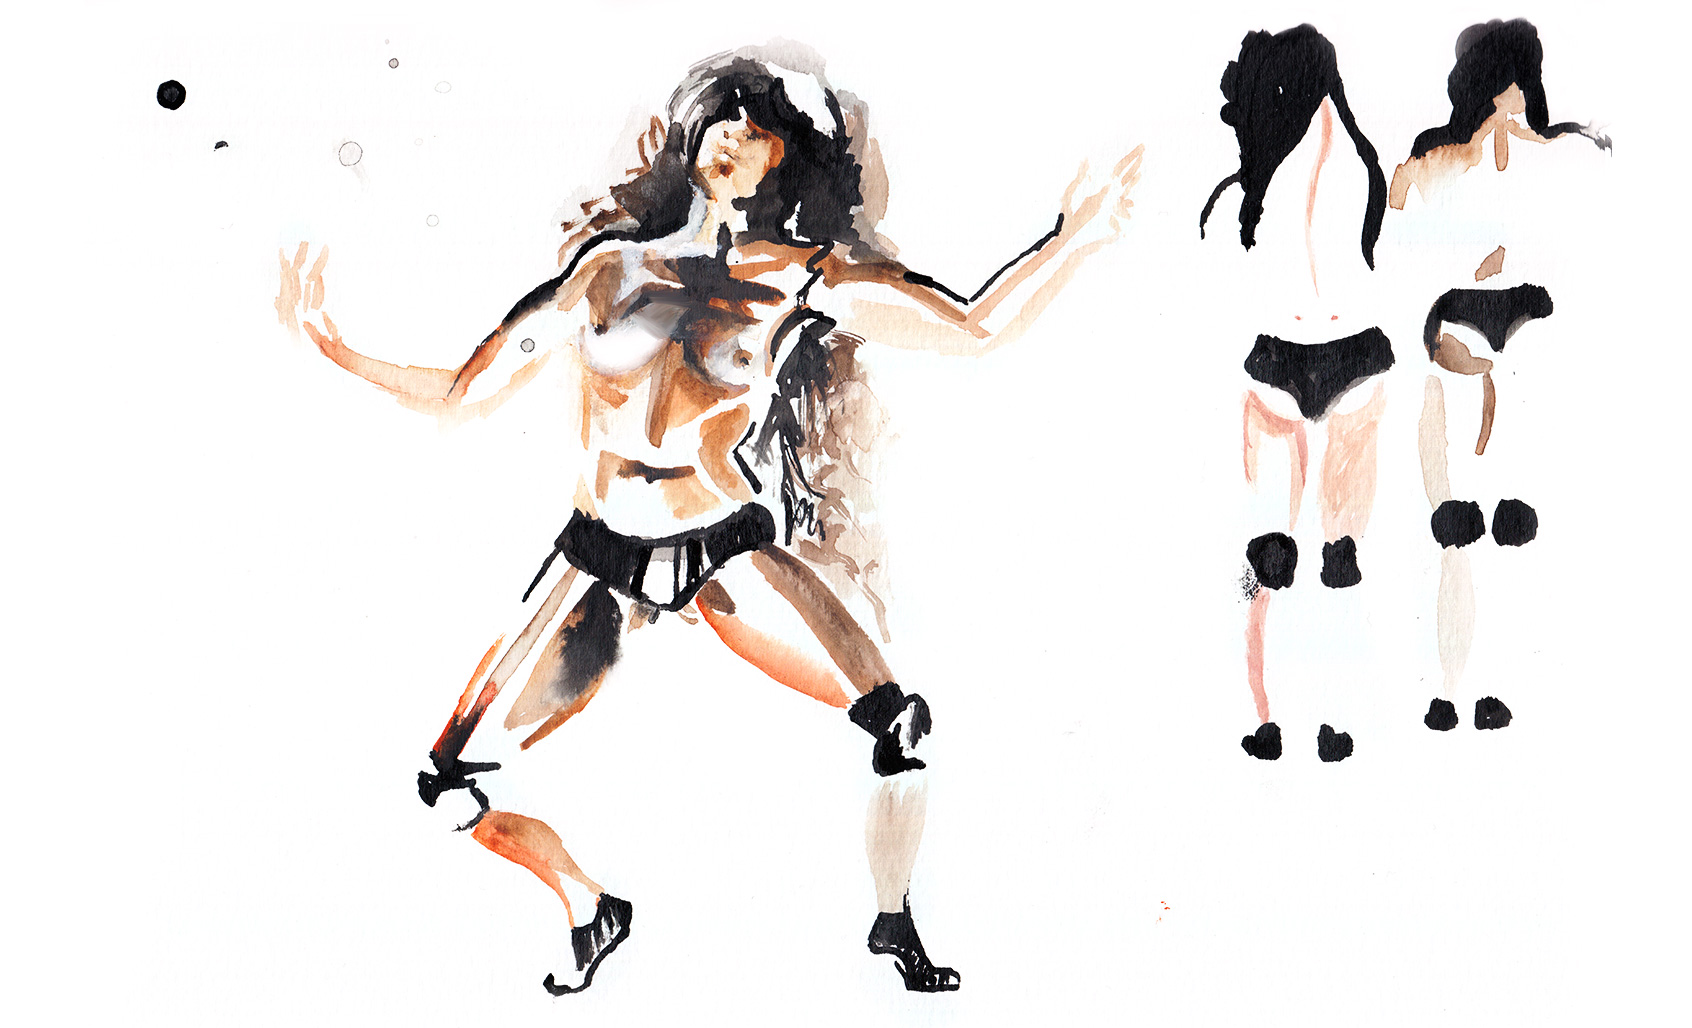 Anna Pi, Cecilia Bengolea and Alex Mugler in Twerk, illustration © Araso